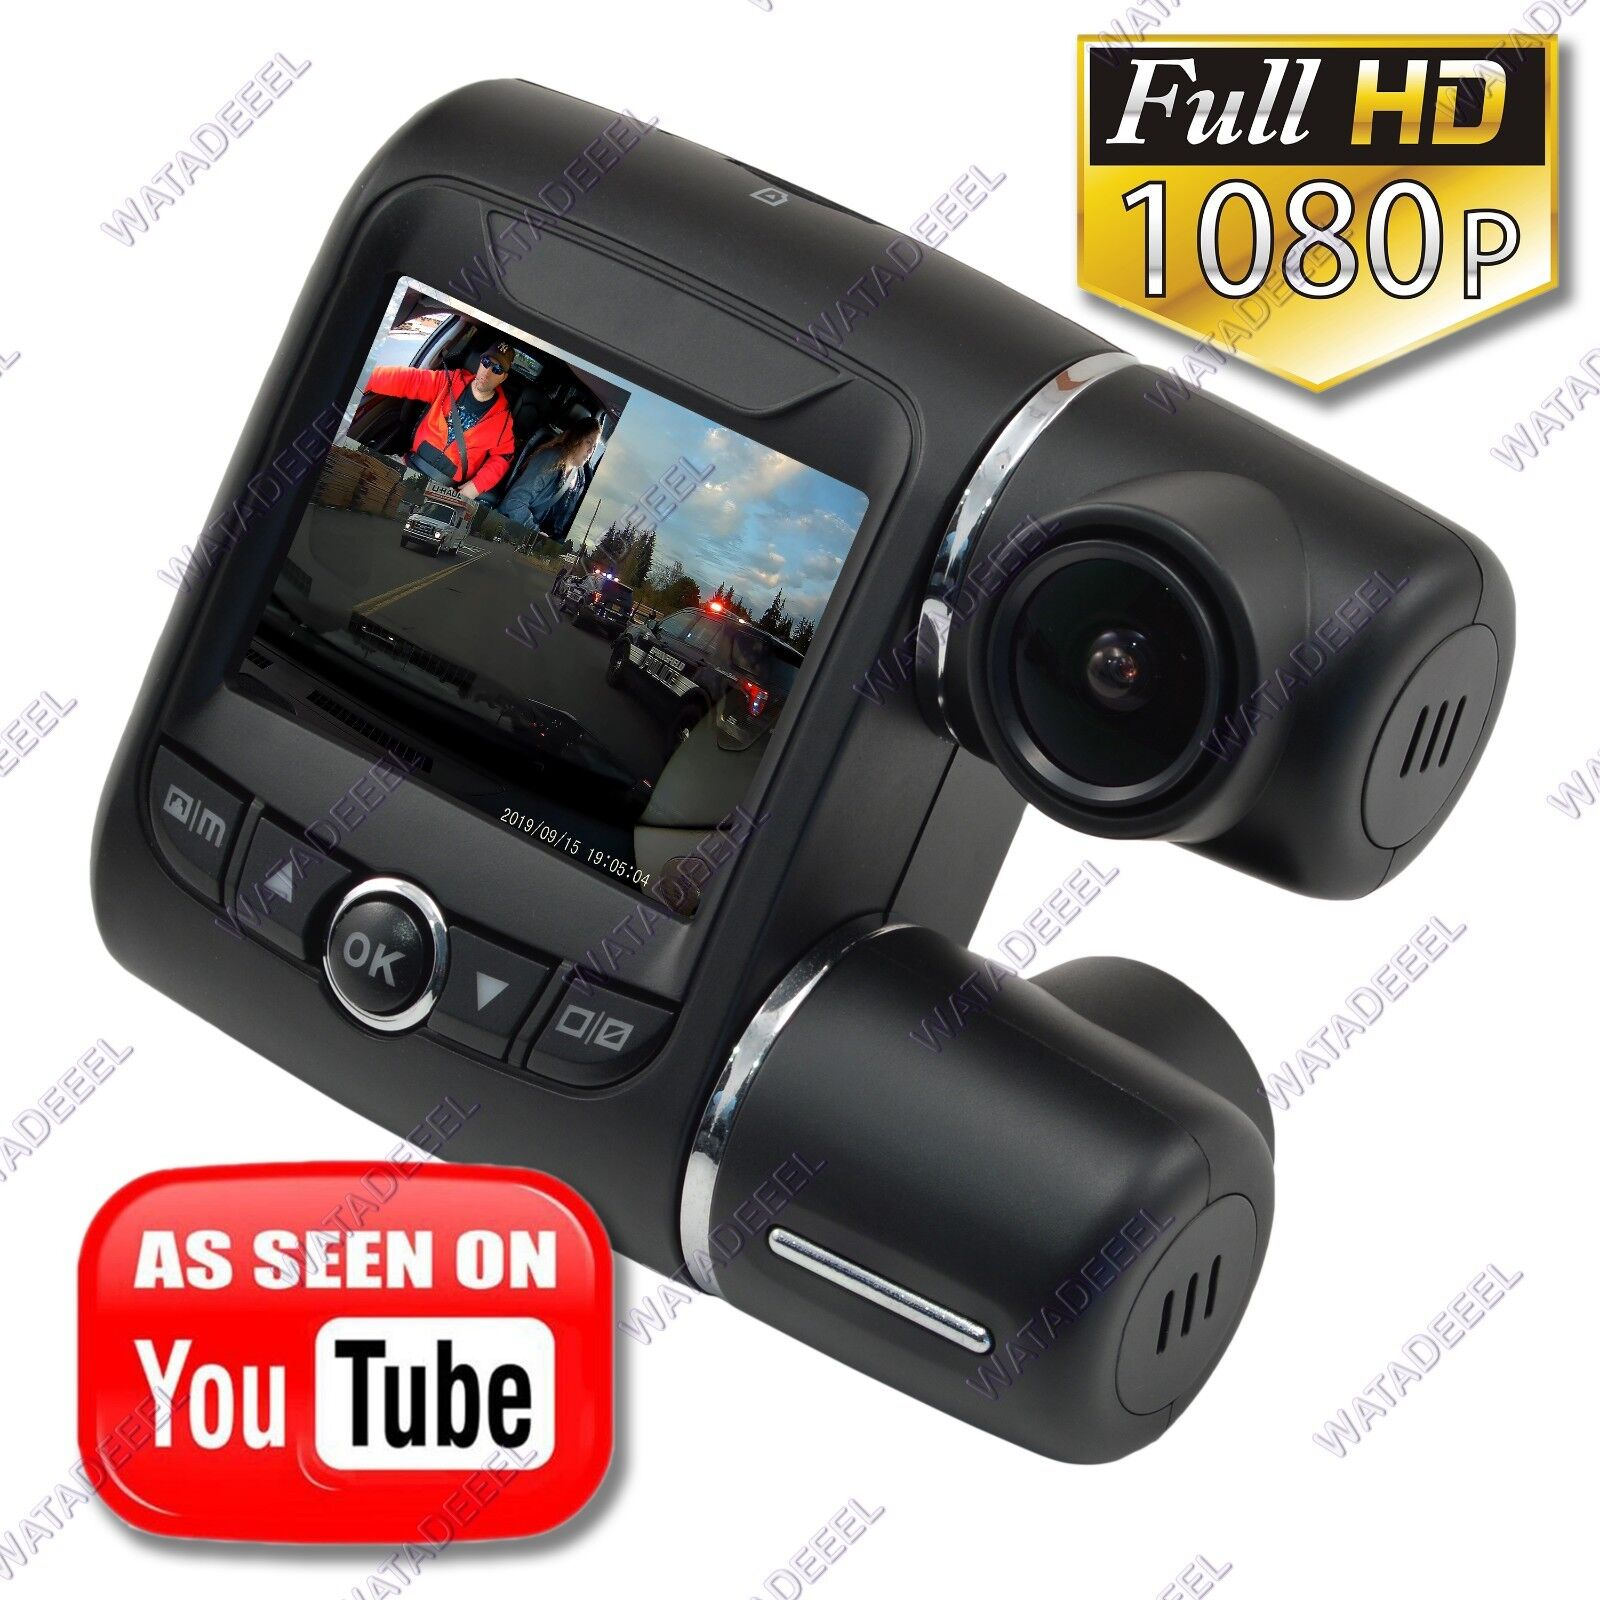 s-l1600 THE BEAST II 2019 Dual Lens 1080p Car Dash Camera DVR - See Demo Video Here!